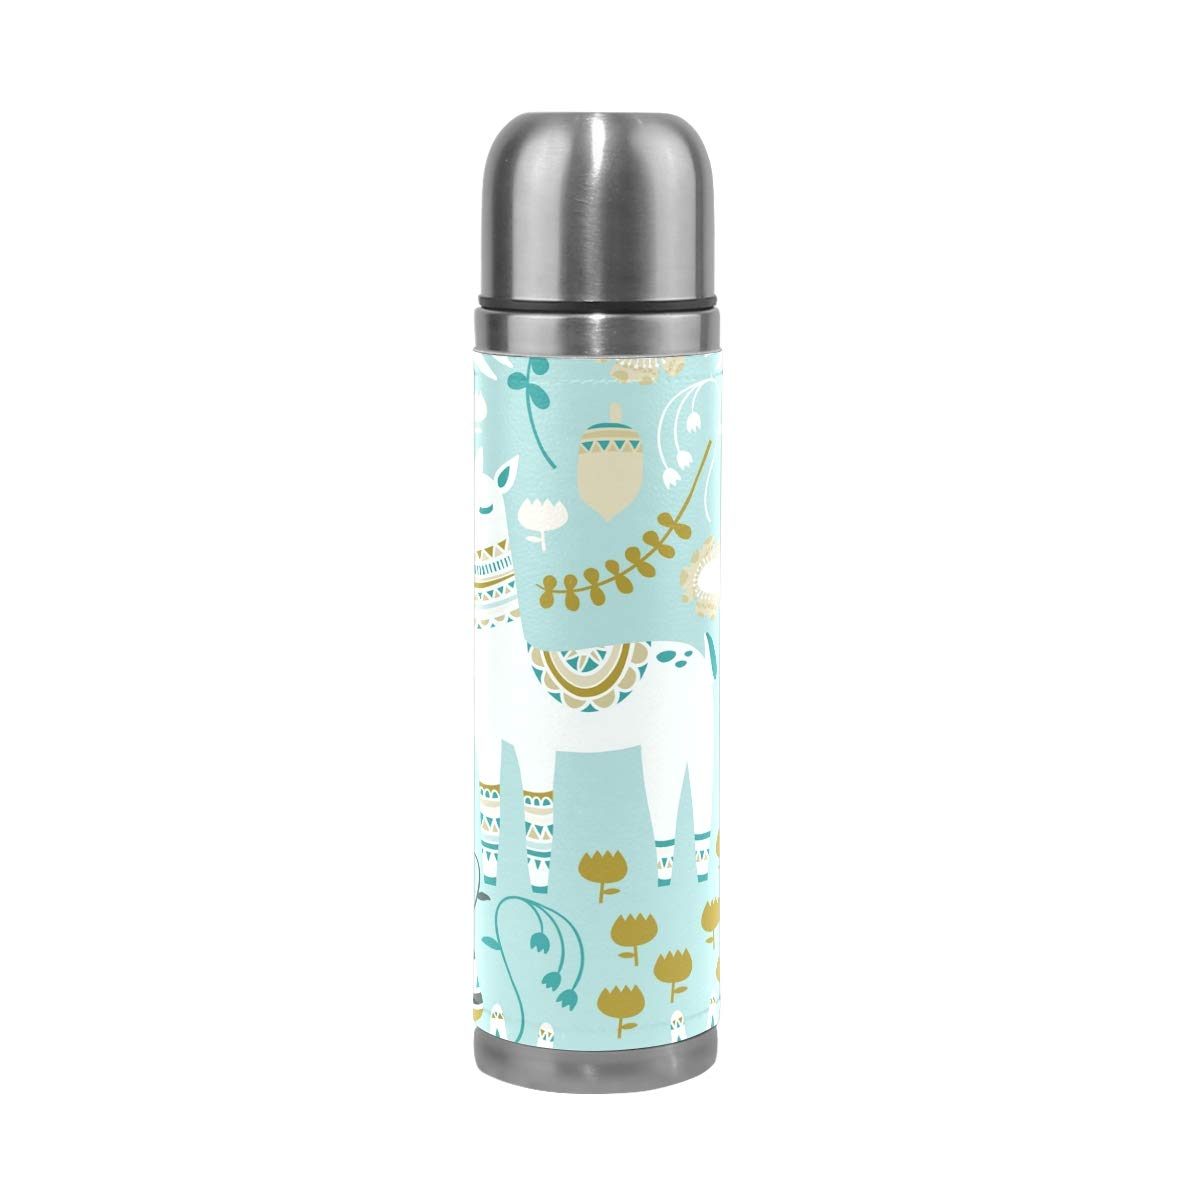 Vacuum Cup Insulated Stainless Steel, Fun Woodland Pattern with Deer Travel Mug for Kids Family Friends